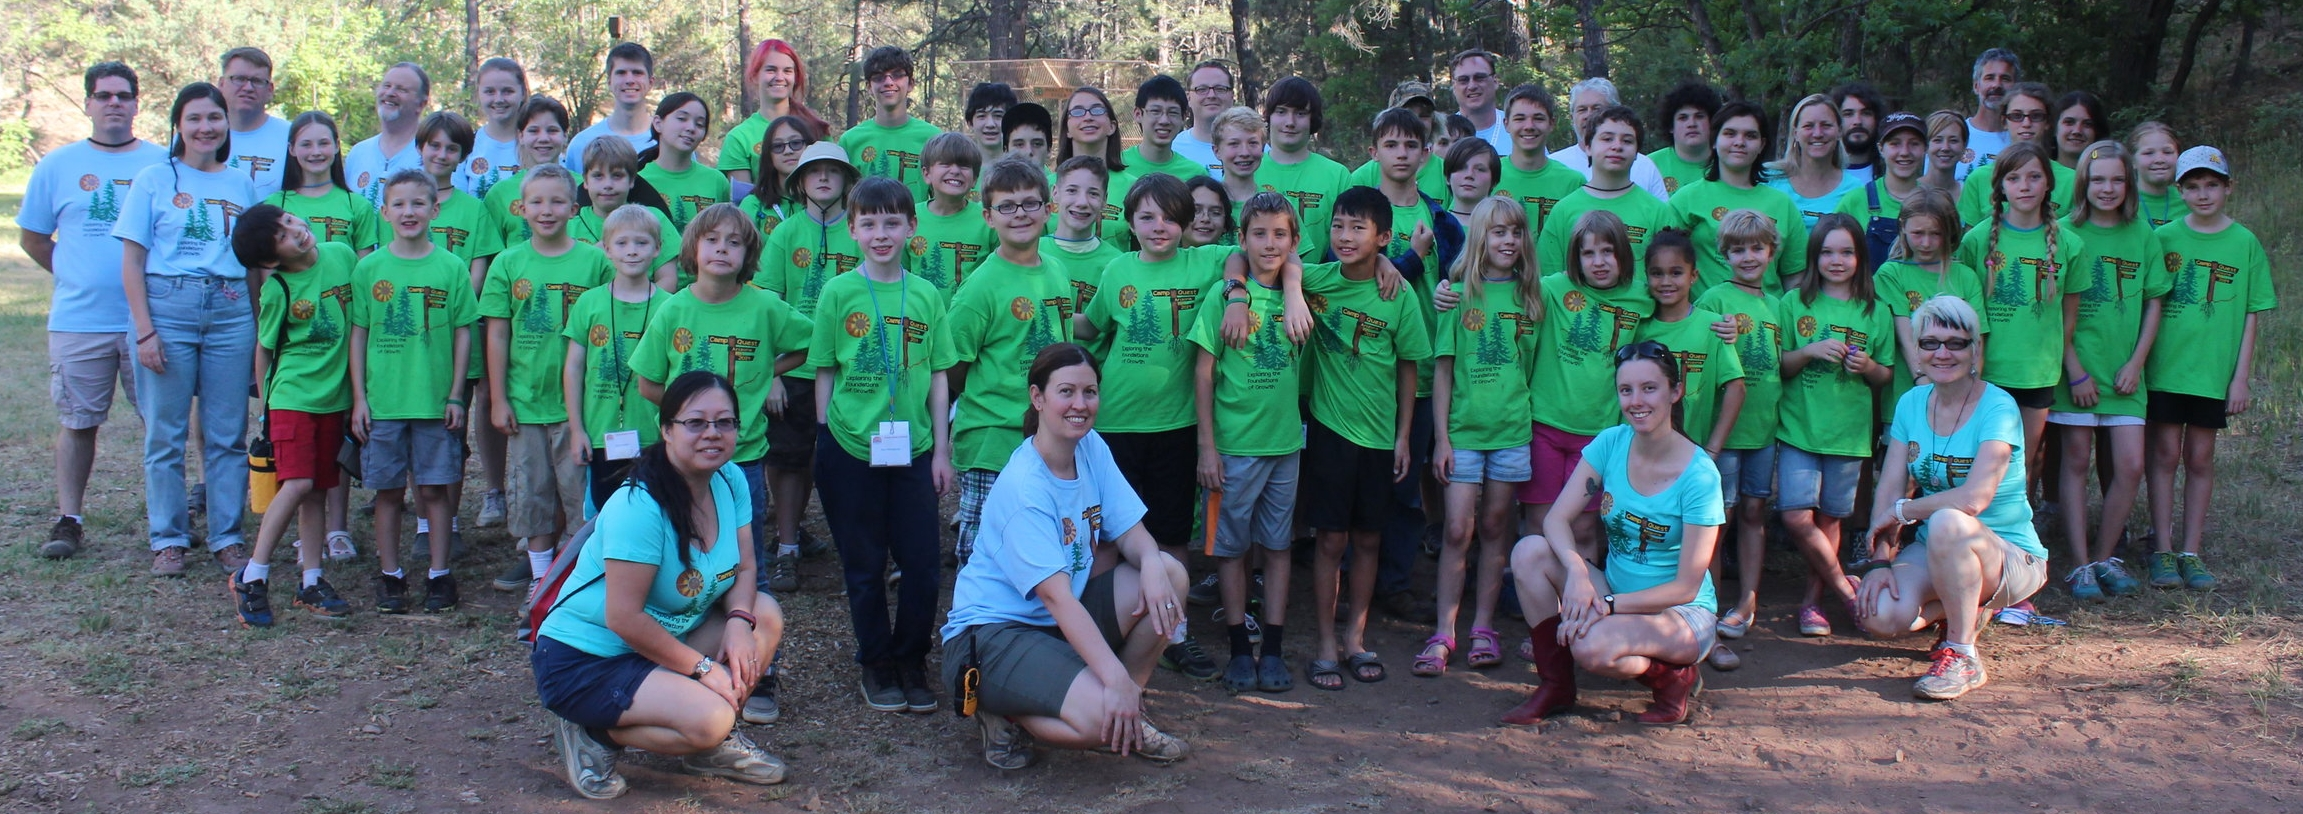 2014 Camp Quest AZ